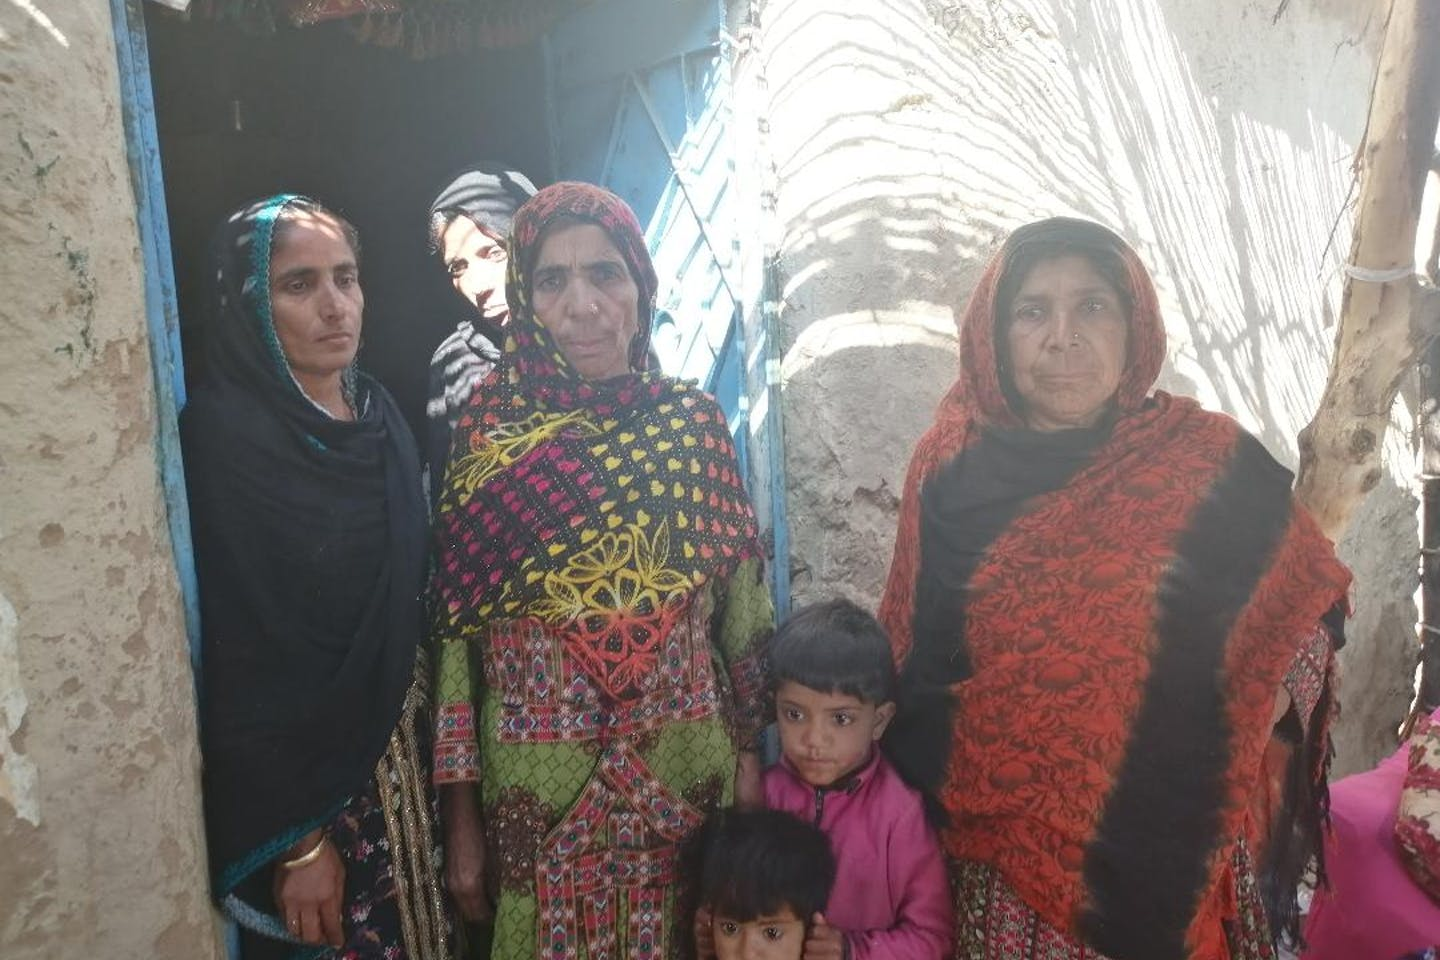 Women from the village of Mitho Goth in Pakistan. Image: Fariha Fatima/Eco-Business